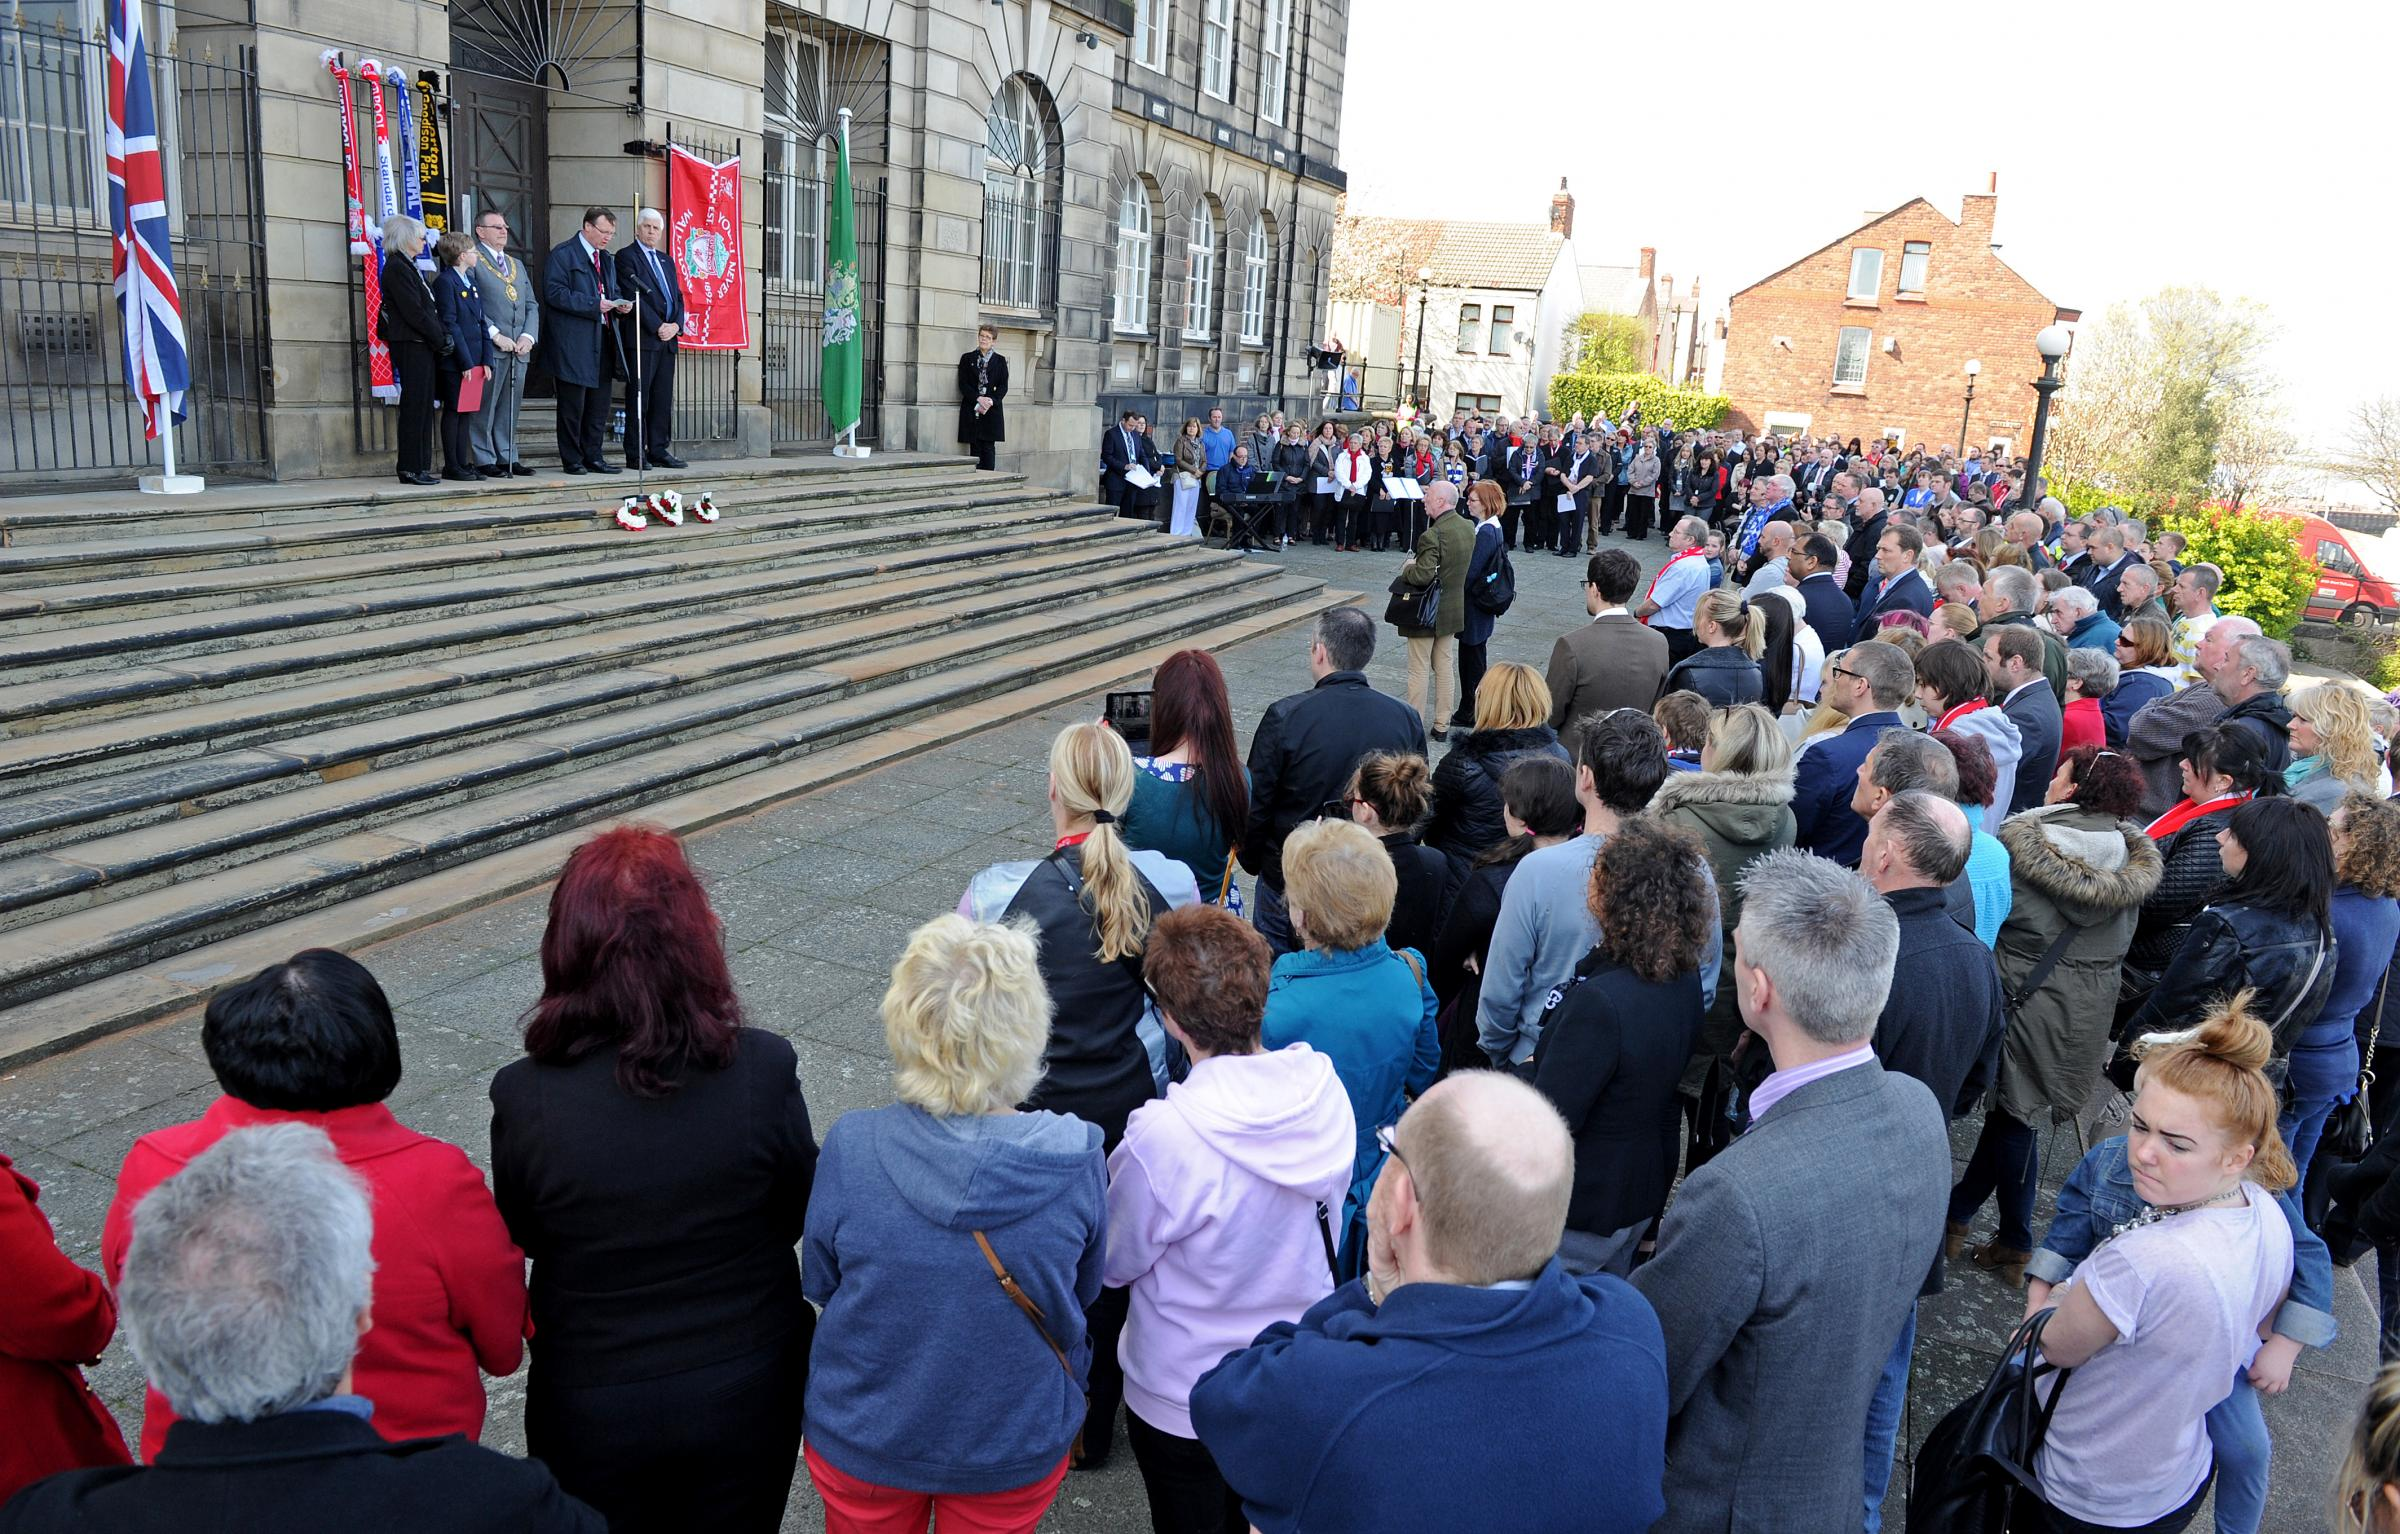 VIDEO: Wirral unites with Liverpool in sadness and hope on Hillsborough 25th anniversary